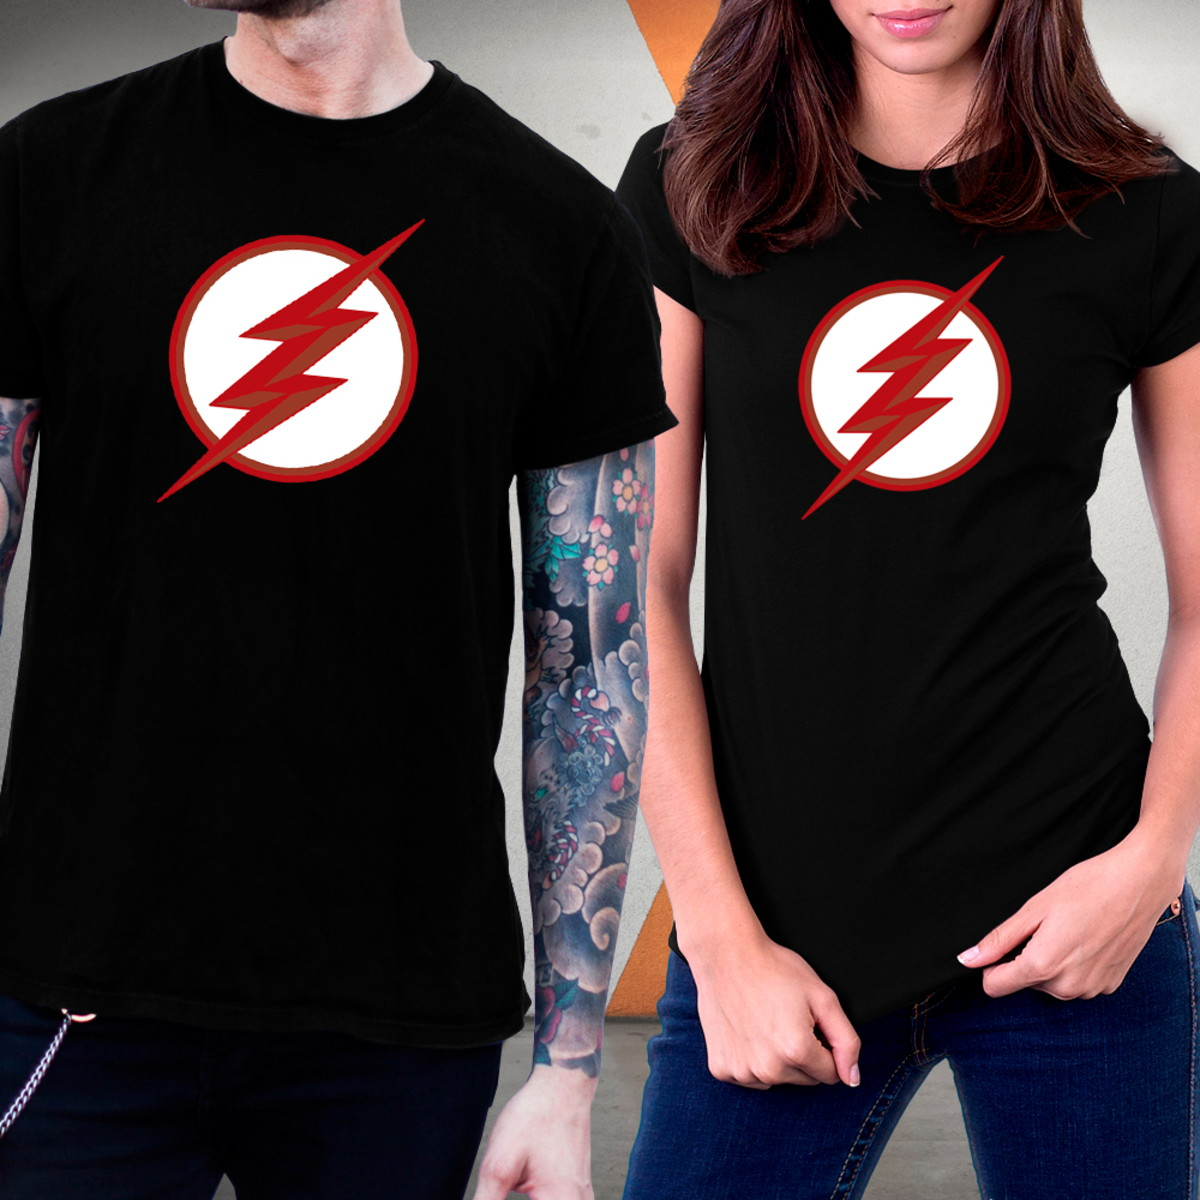 Camiseta The Flash Black Flash Blusa Series Flash Negro No Elo7 X Force The Anti Fashion Store 116821e